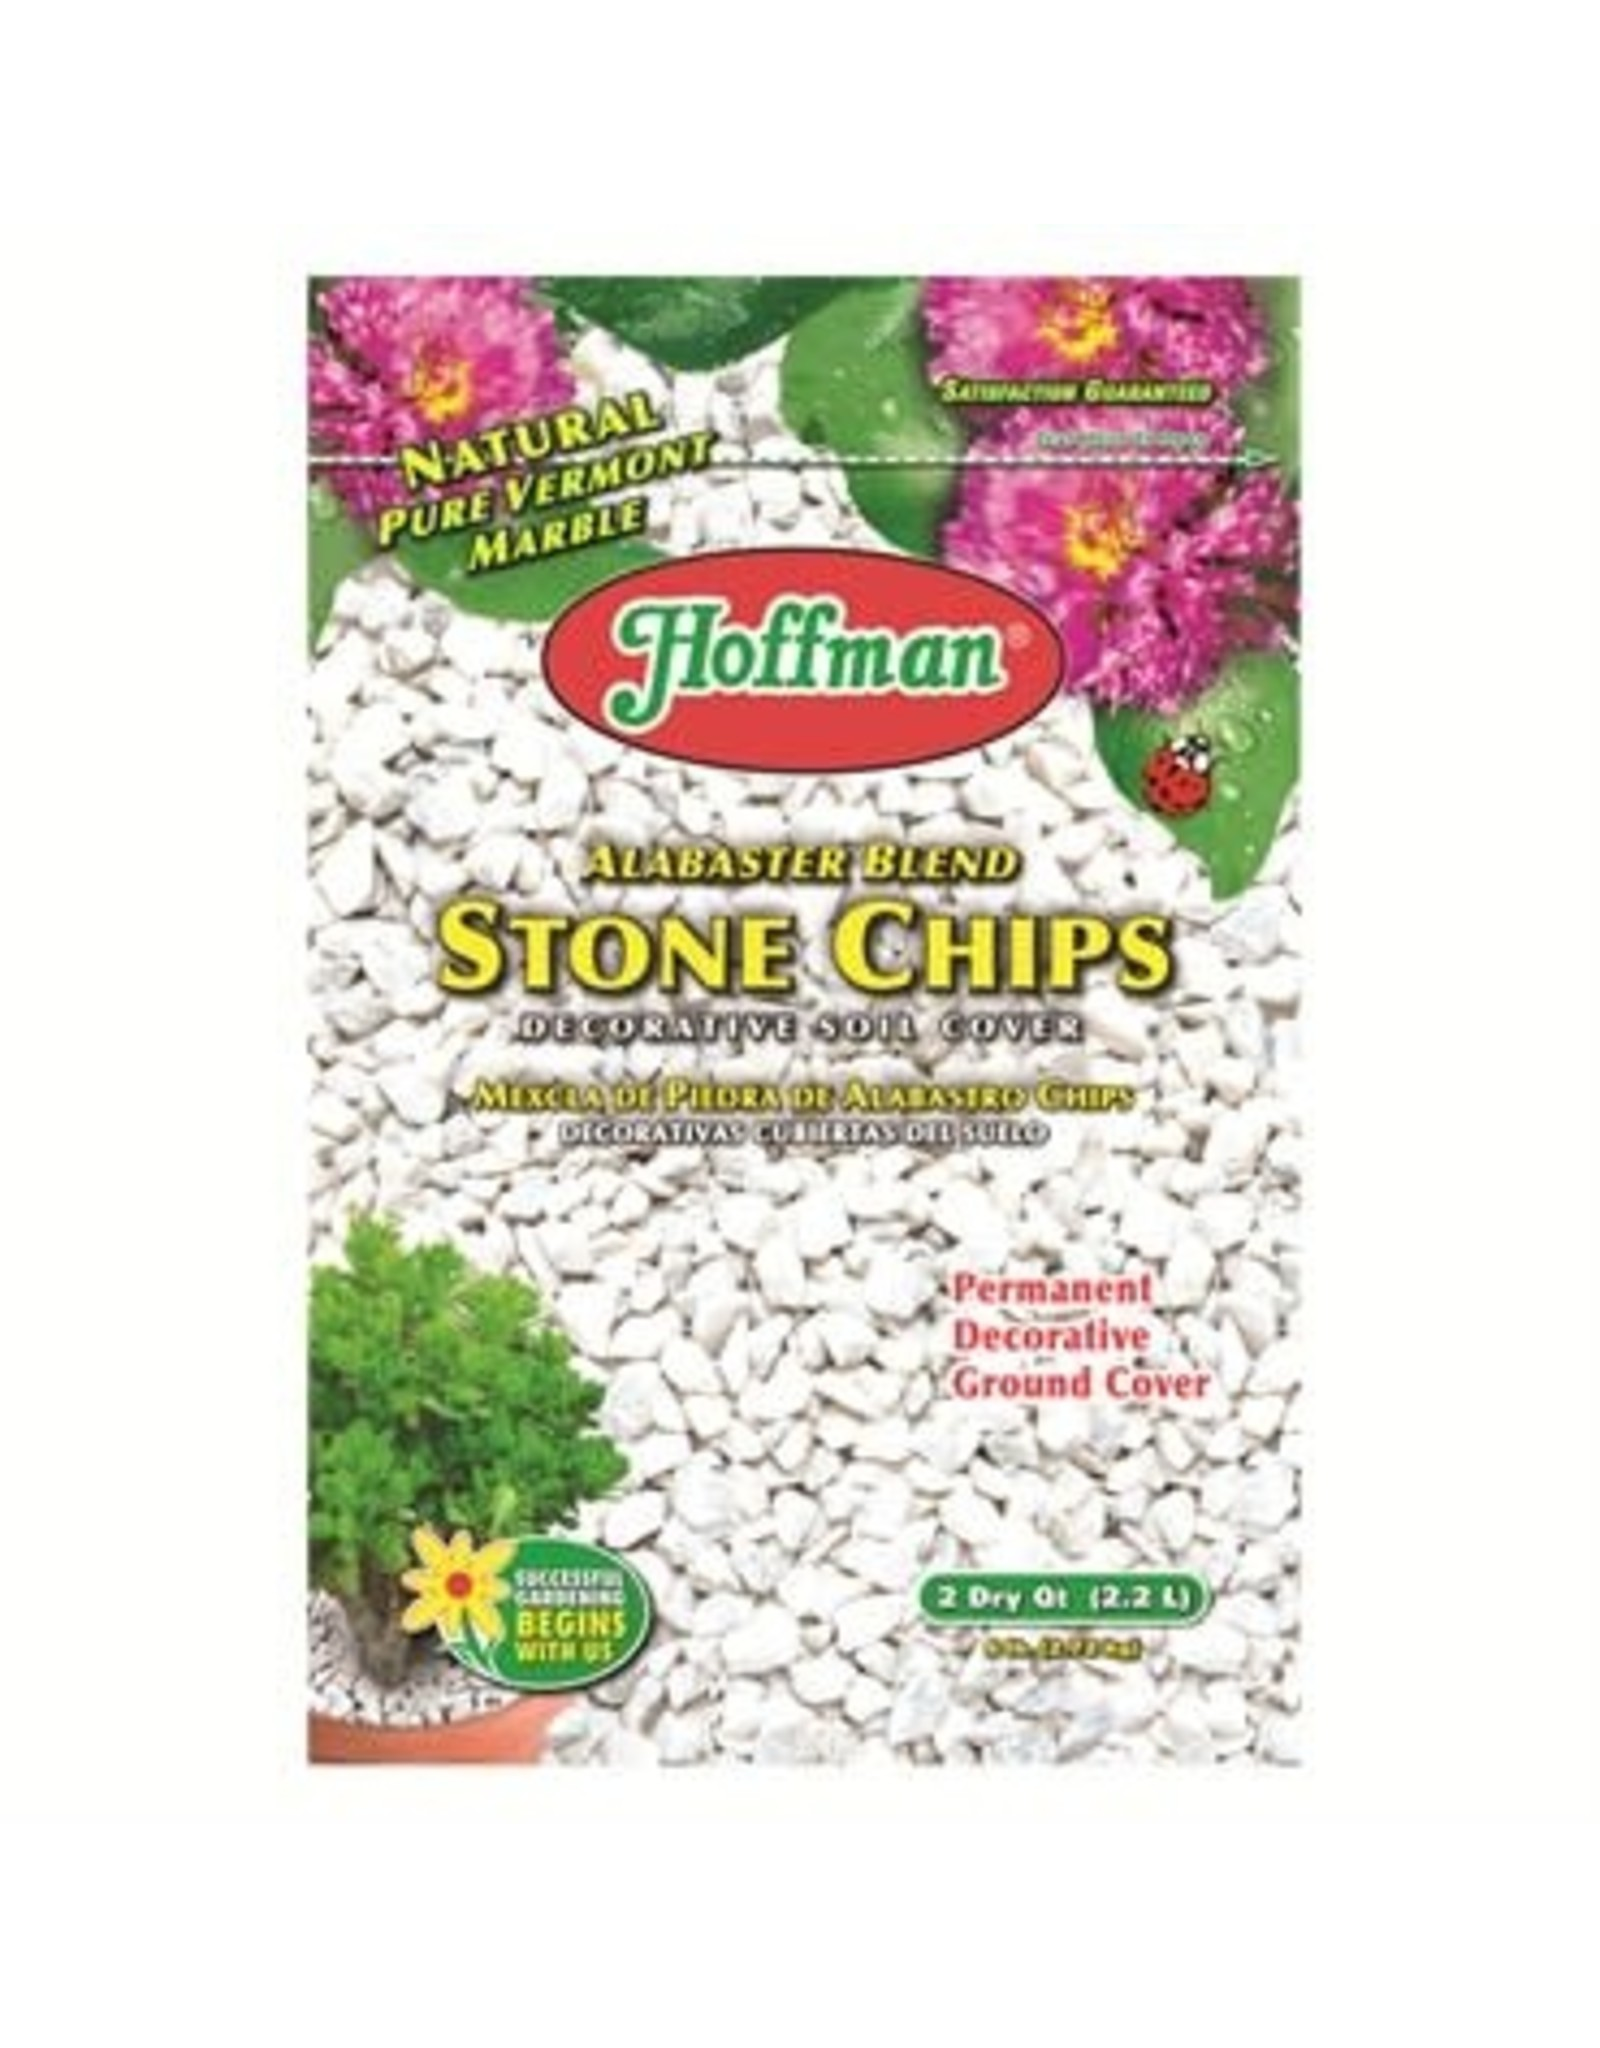 Alabaster Blend Stone Chips - 2 Quart